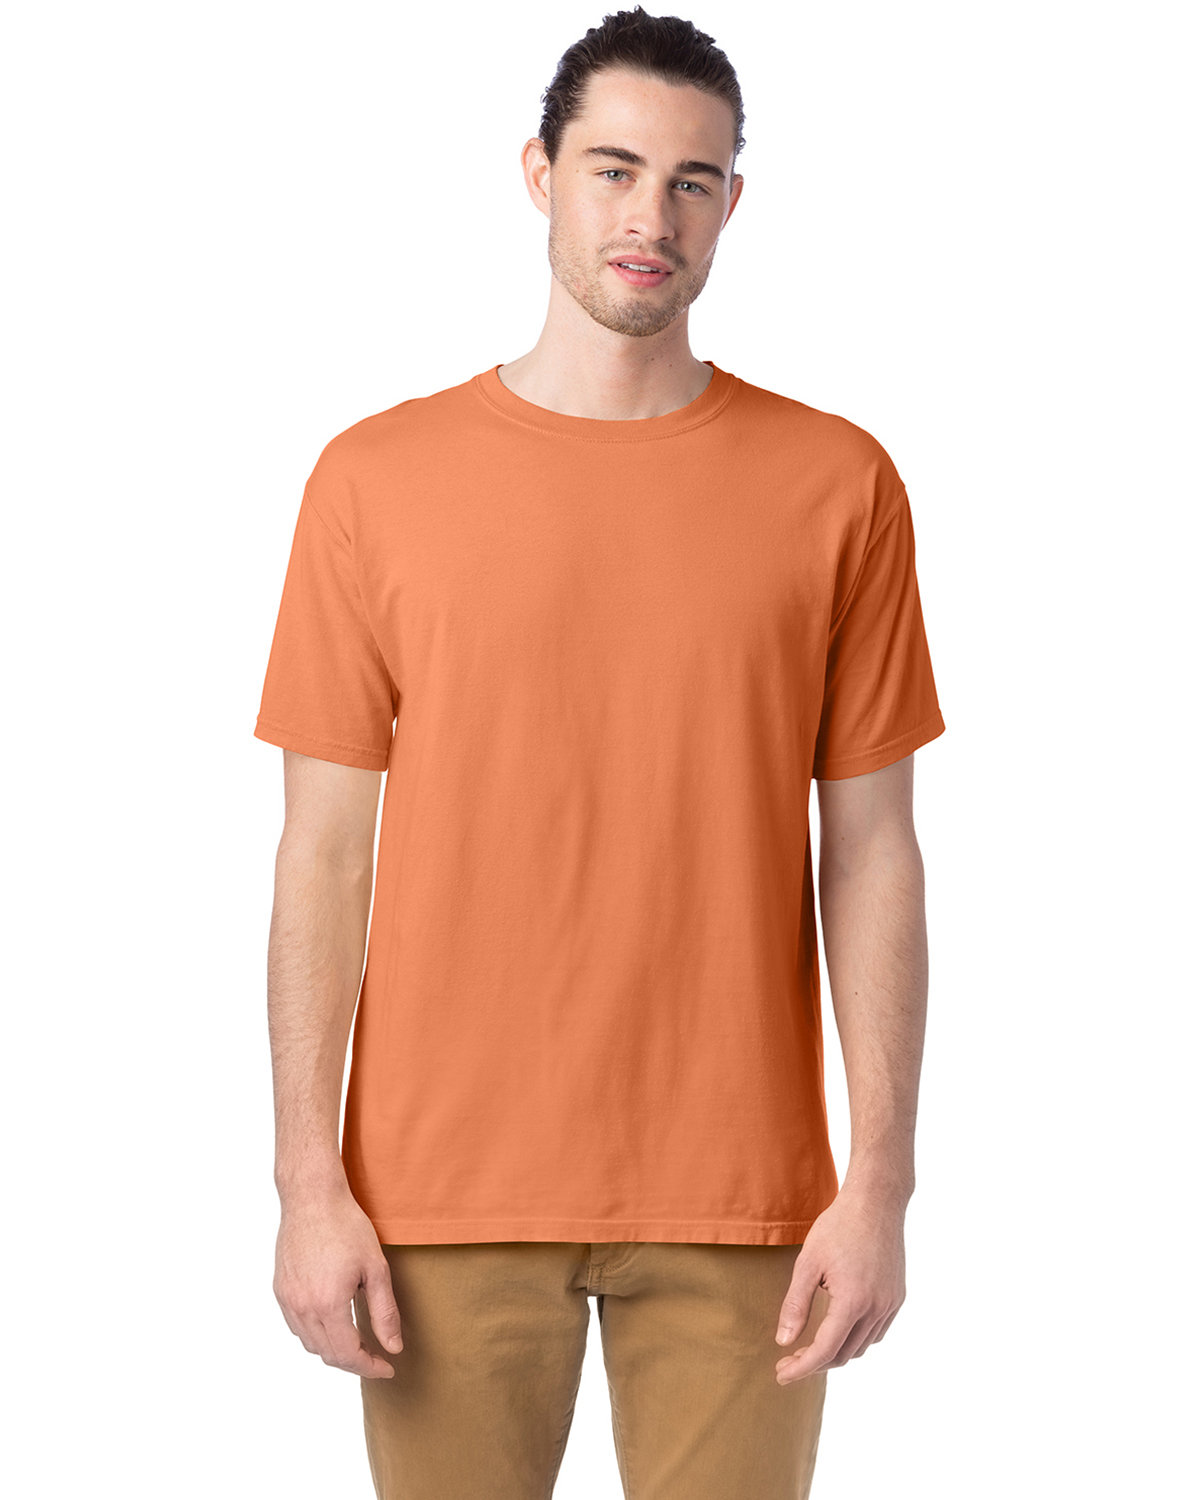 ComfortWash by Hanes Men's 5.5 oz., 100% Ringspun Cotton Garment-Dyed T-Shirt HORIZON ORANGE